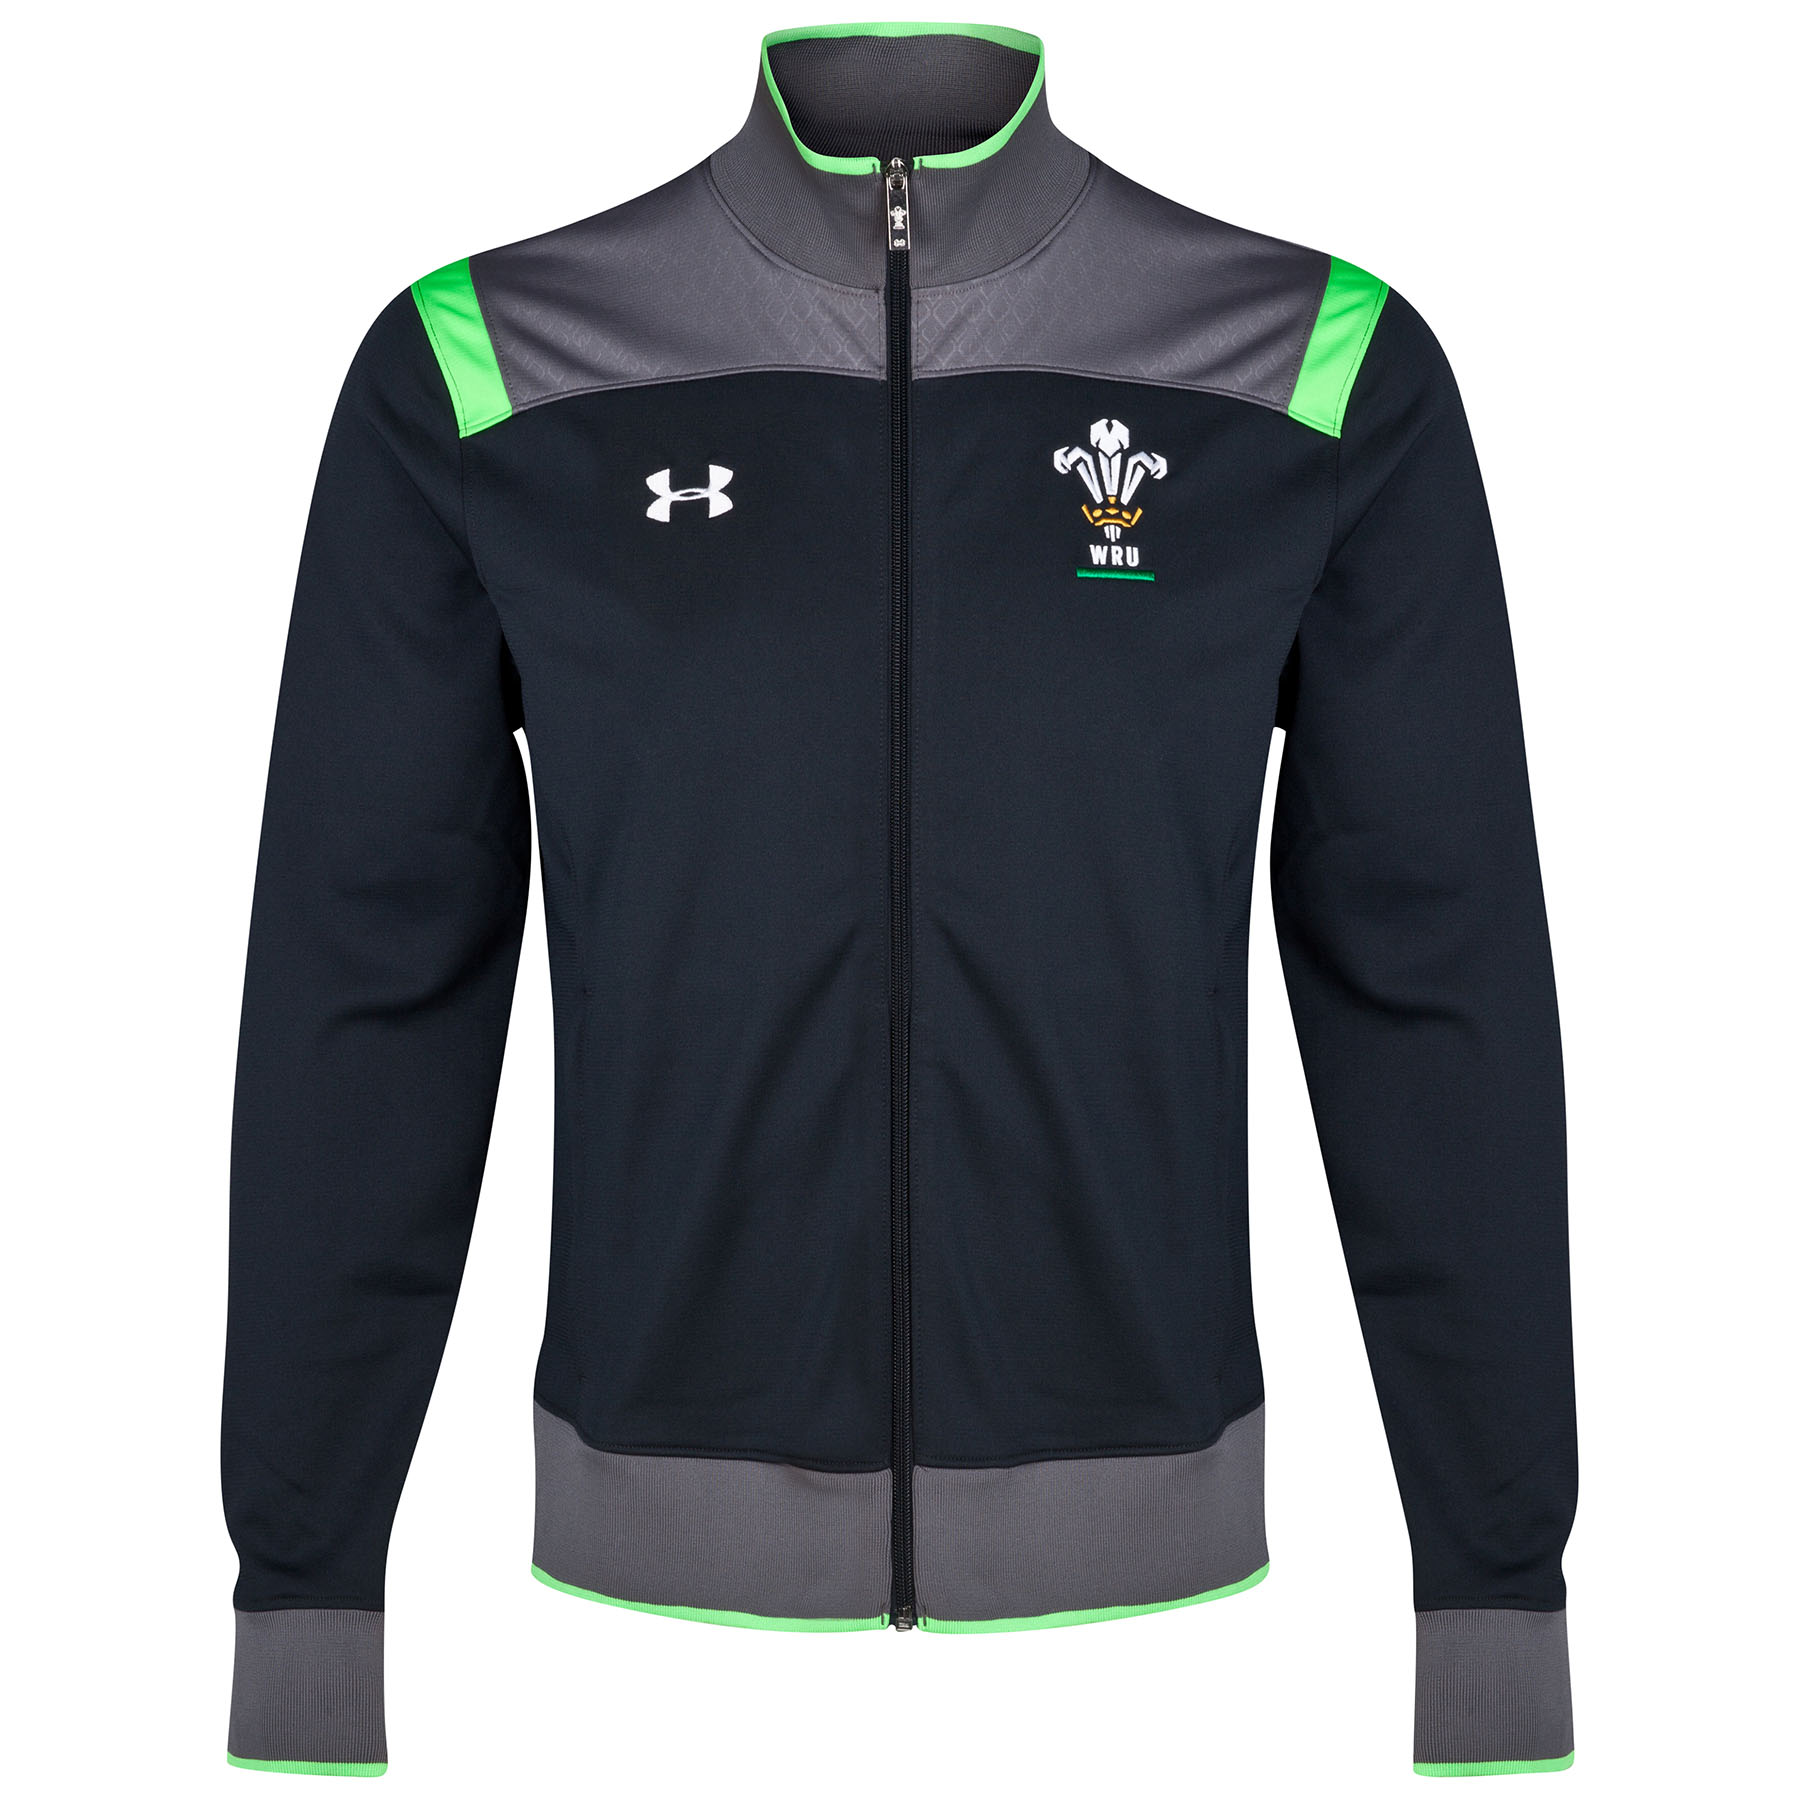 Wales Rugby Union Track Jacket Loose 2014/15 Black